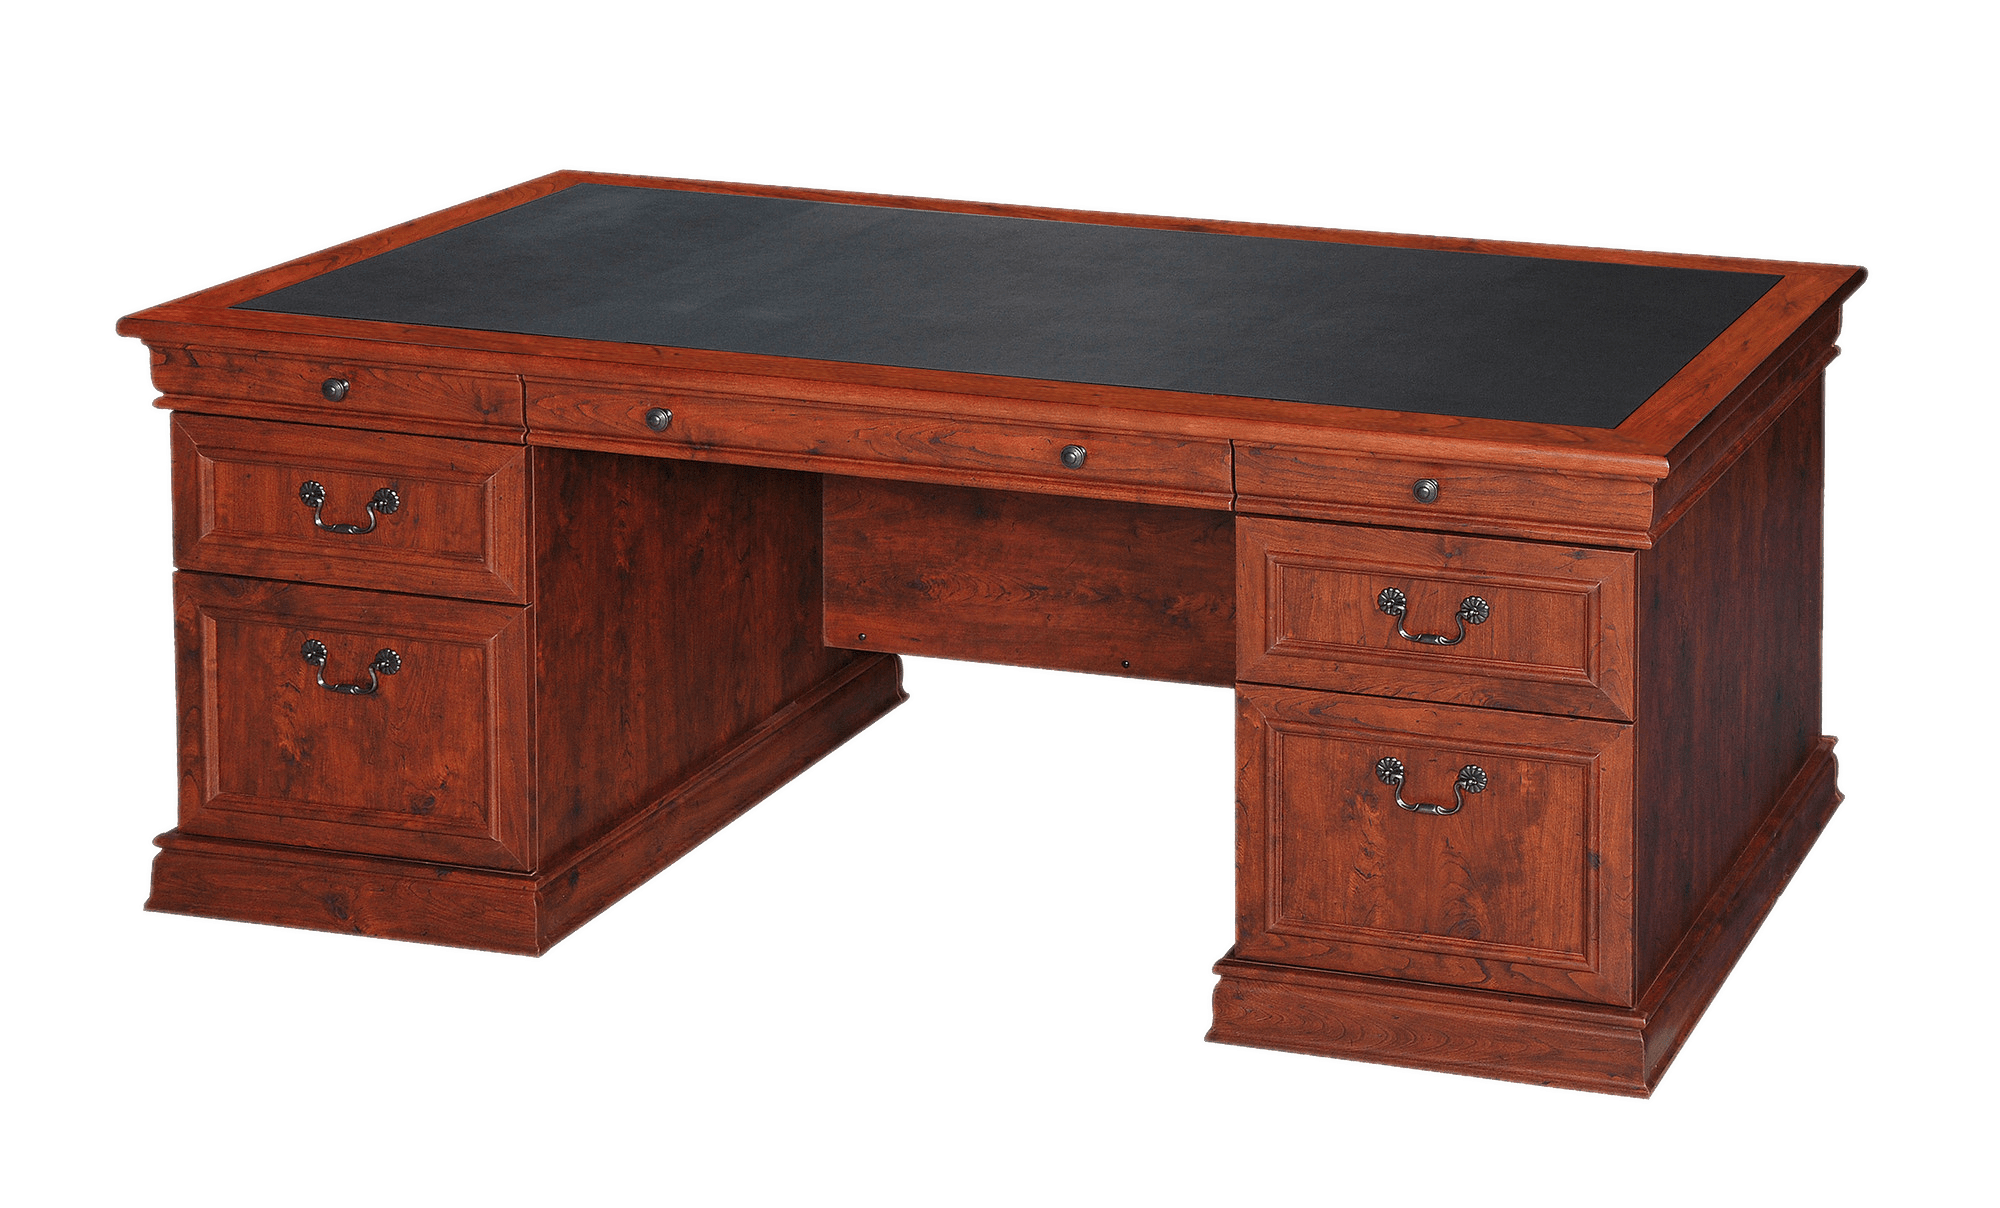 wooden cool speedy woodworking pedestal on wood solid projects lgw executive office double arkansas desk new antique analysis kneehole desks a in methods easy